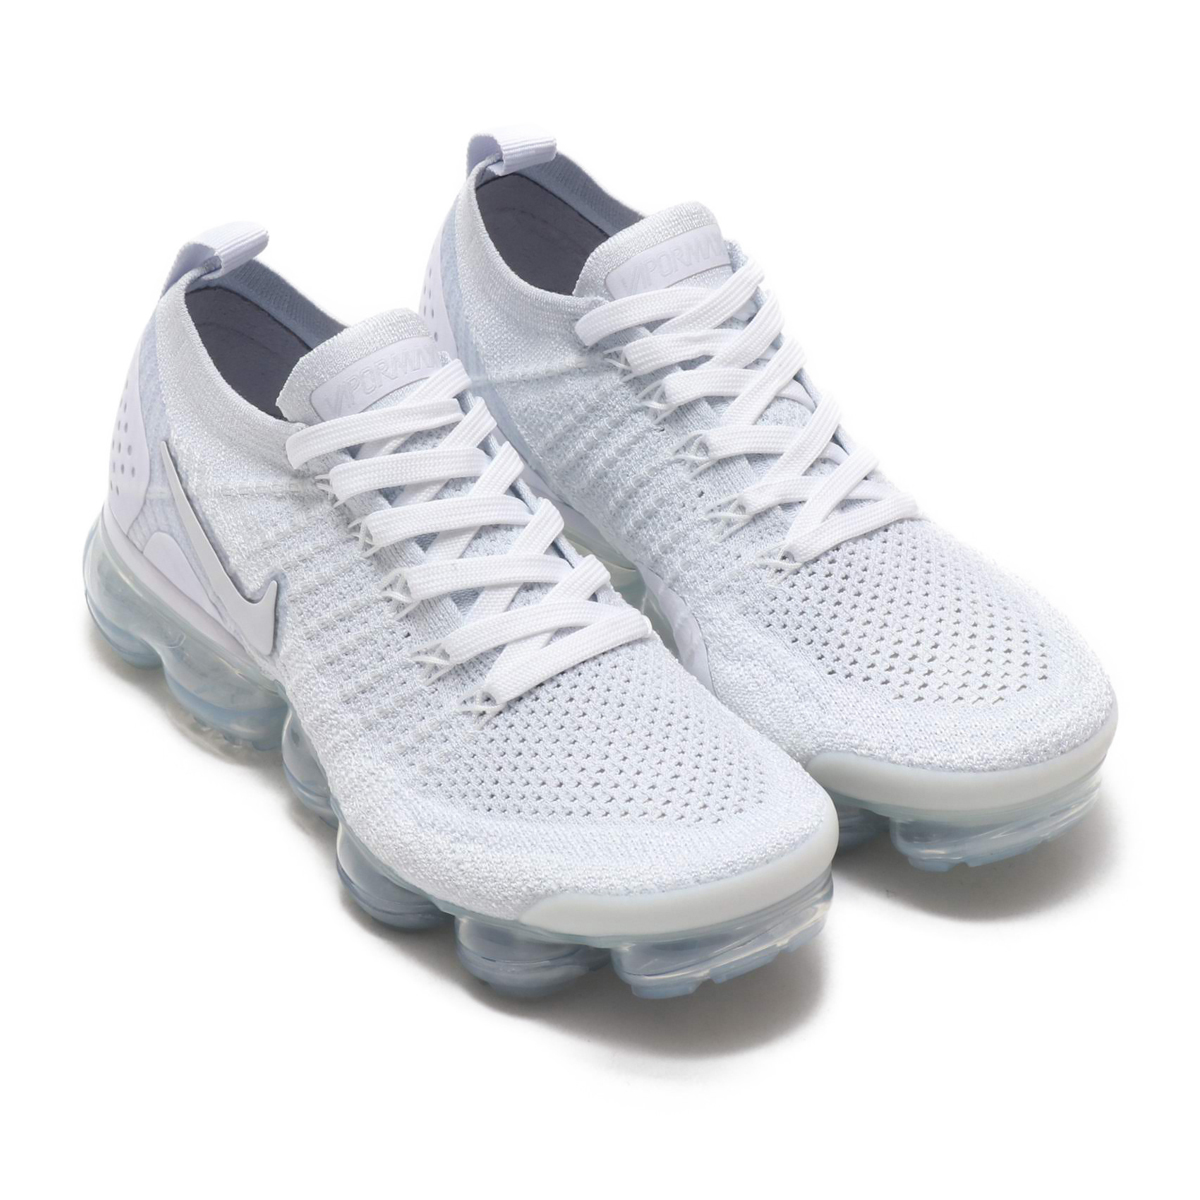 aa95d9ae9b398 NIKE W AIR VAPORMAX FLYKNIT 2 (Nike women air vapor max fried food knit 2)  WHITE/WHITE-VAST GREY-FOOTBALL GREY 18FA-S